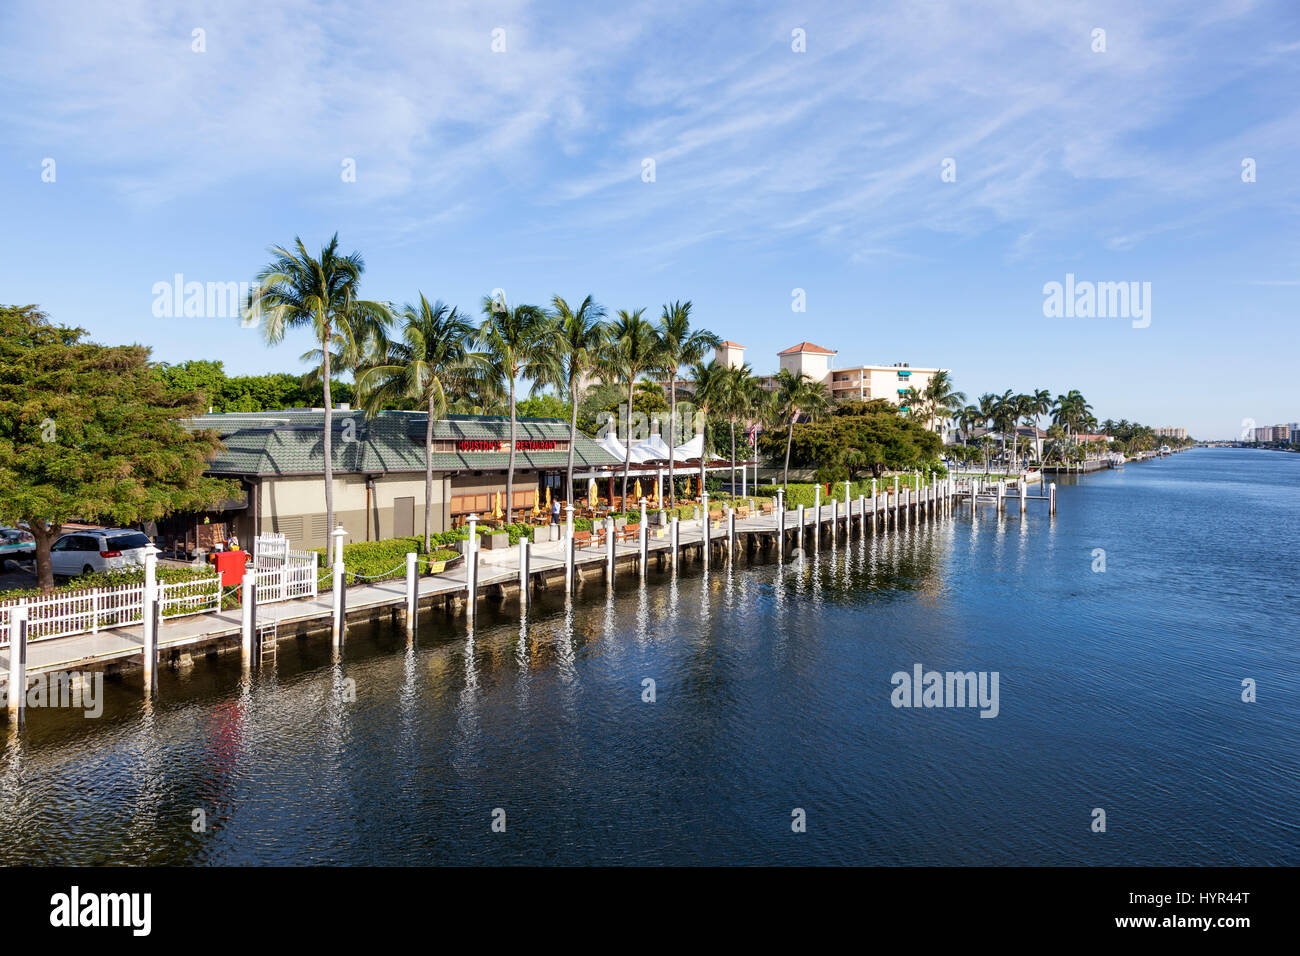 Pompano Beach, Fl, USA - March 15, 2017: Waterfront restaurant and buildings in Pompano Beach, Florida, United States - Stock Image